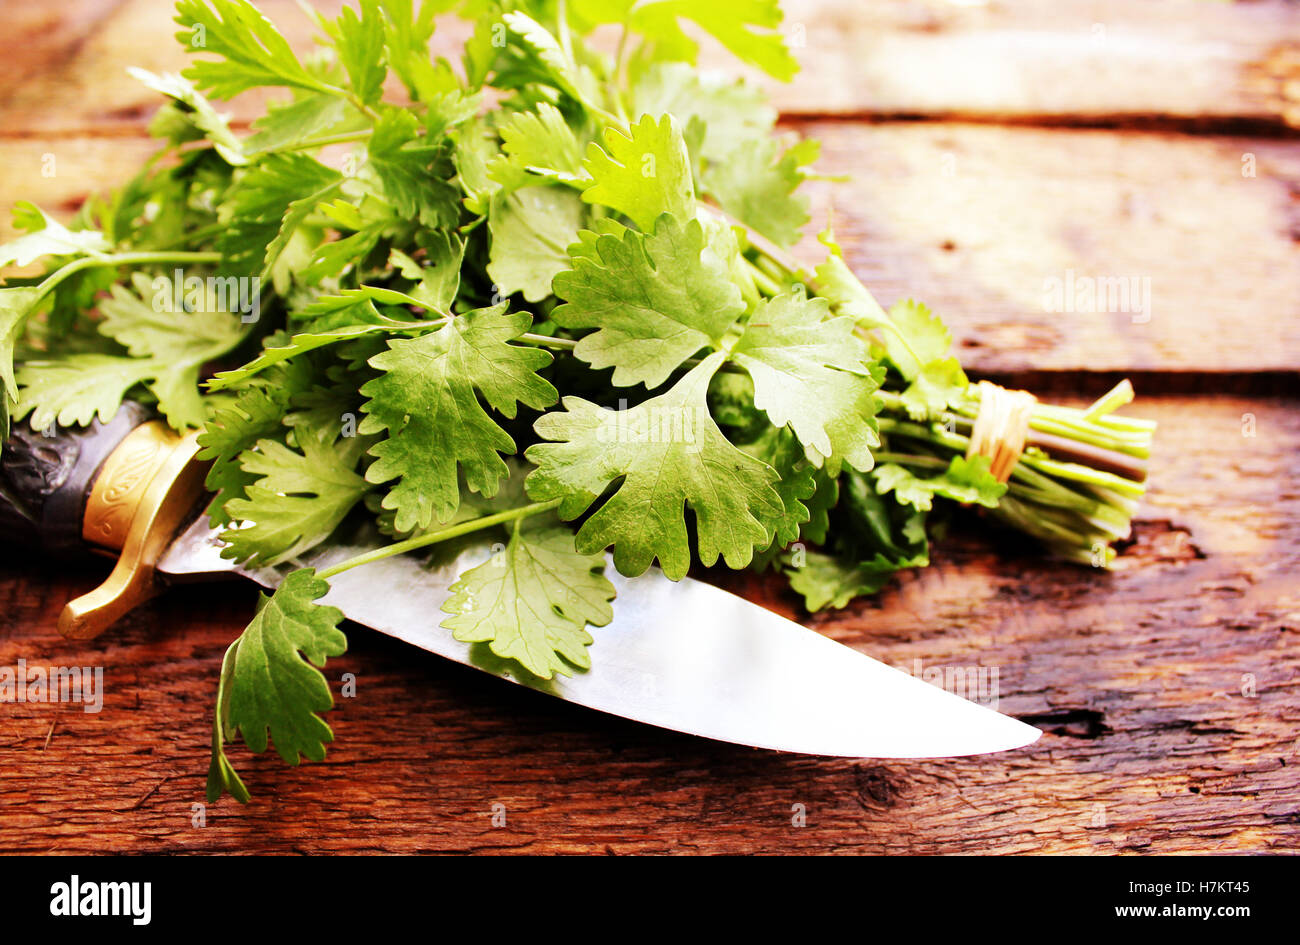 Bunch of coriander leaves on a wooden table - Stock Image